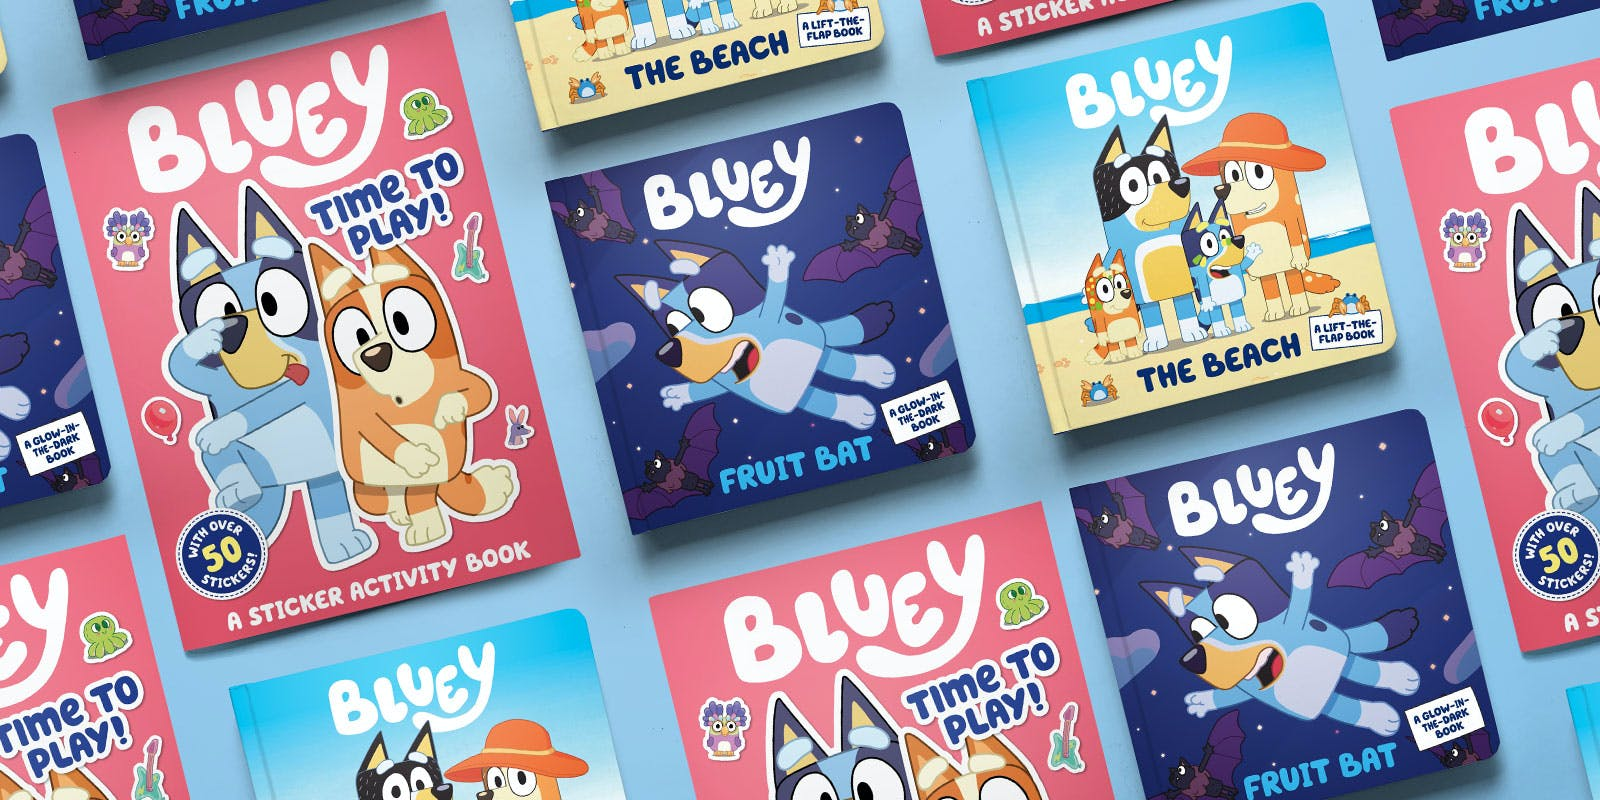 How to host a Bluey book club